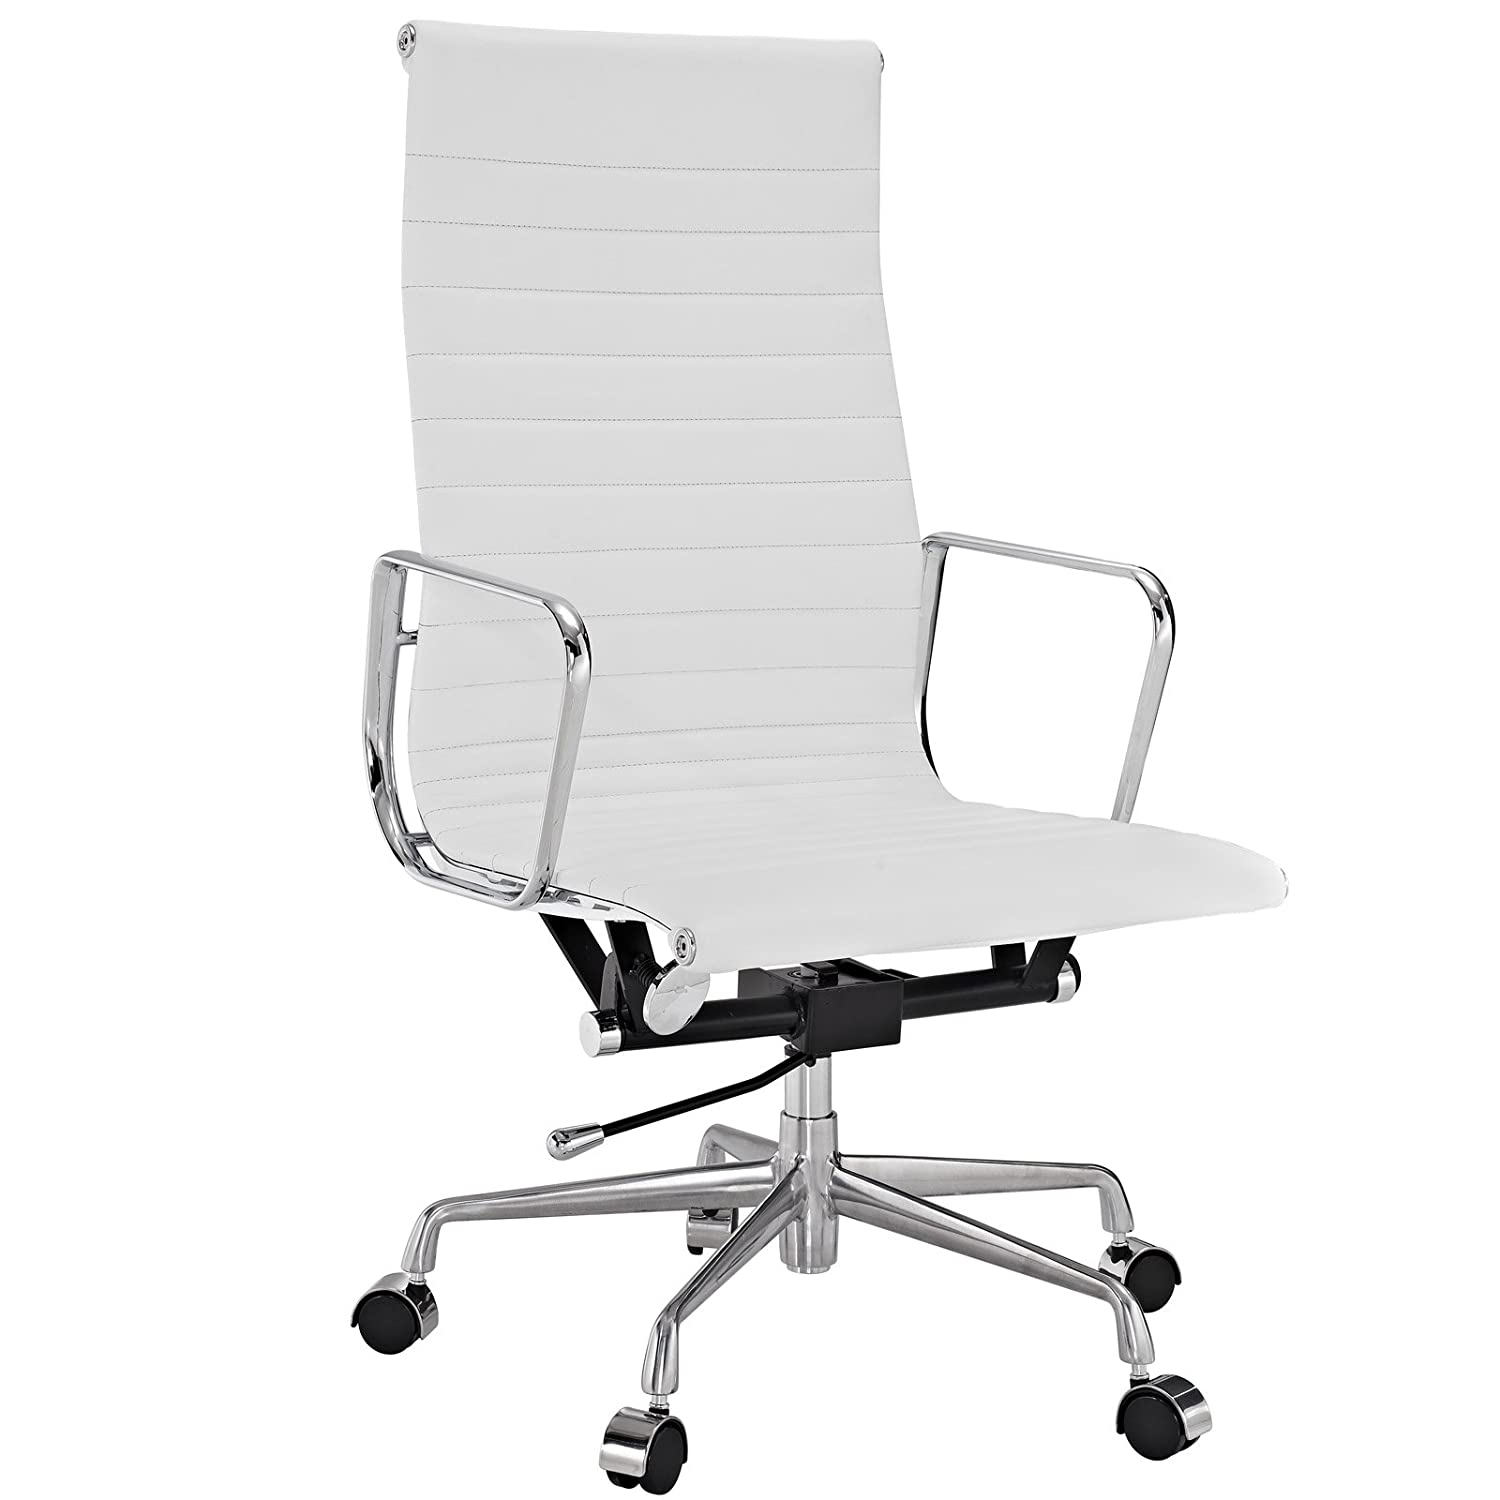 review chairs repair officeworks design size black and executive ideas quirky with high combination computer quality of back white full quiet furniture desk color relaxing chair office for mid